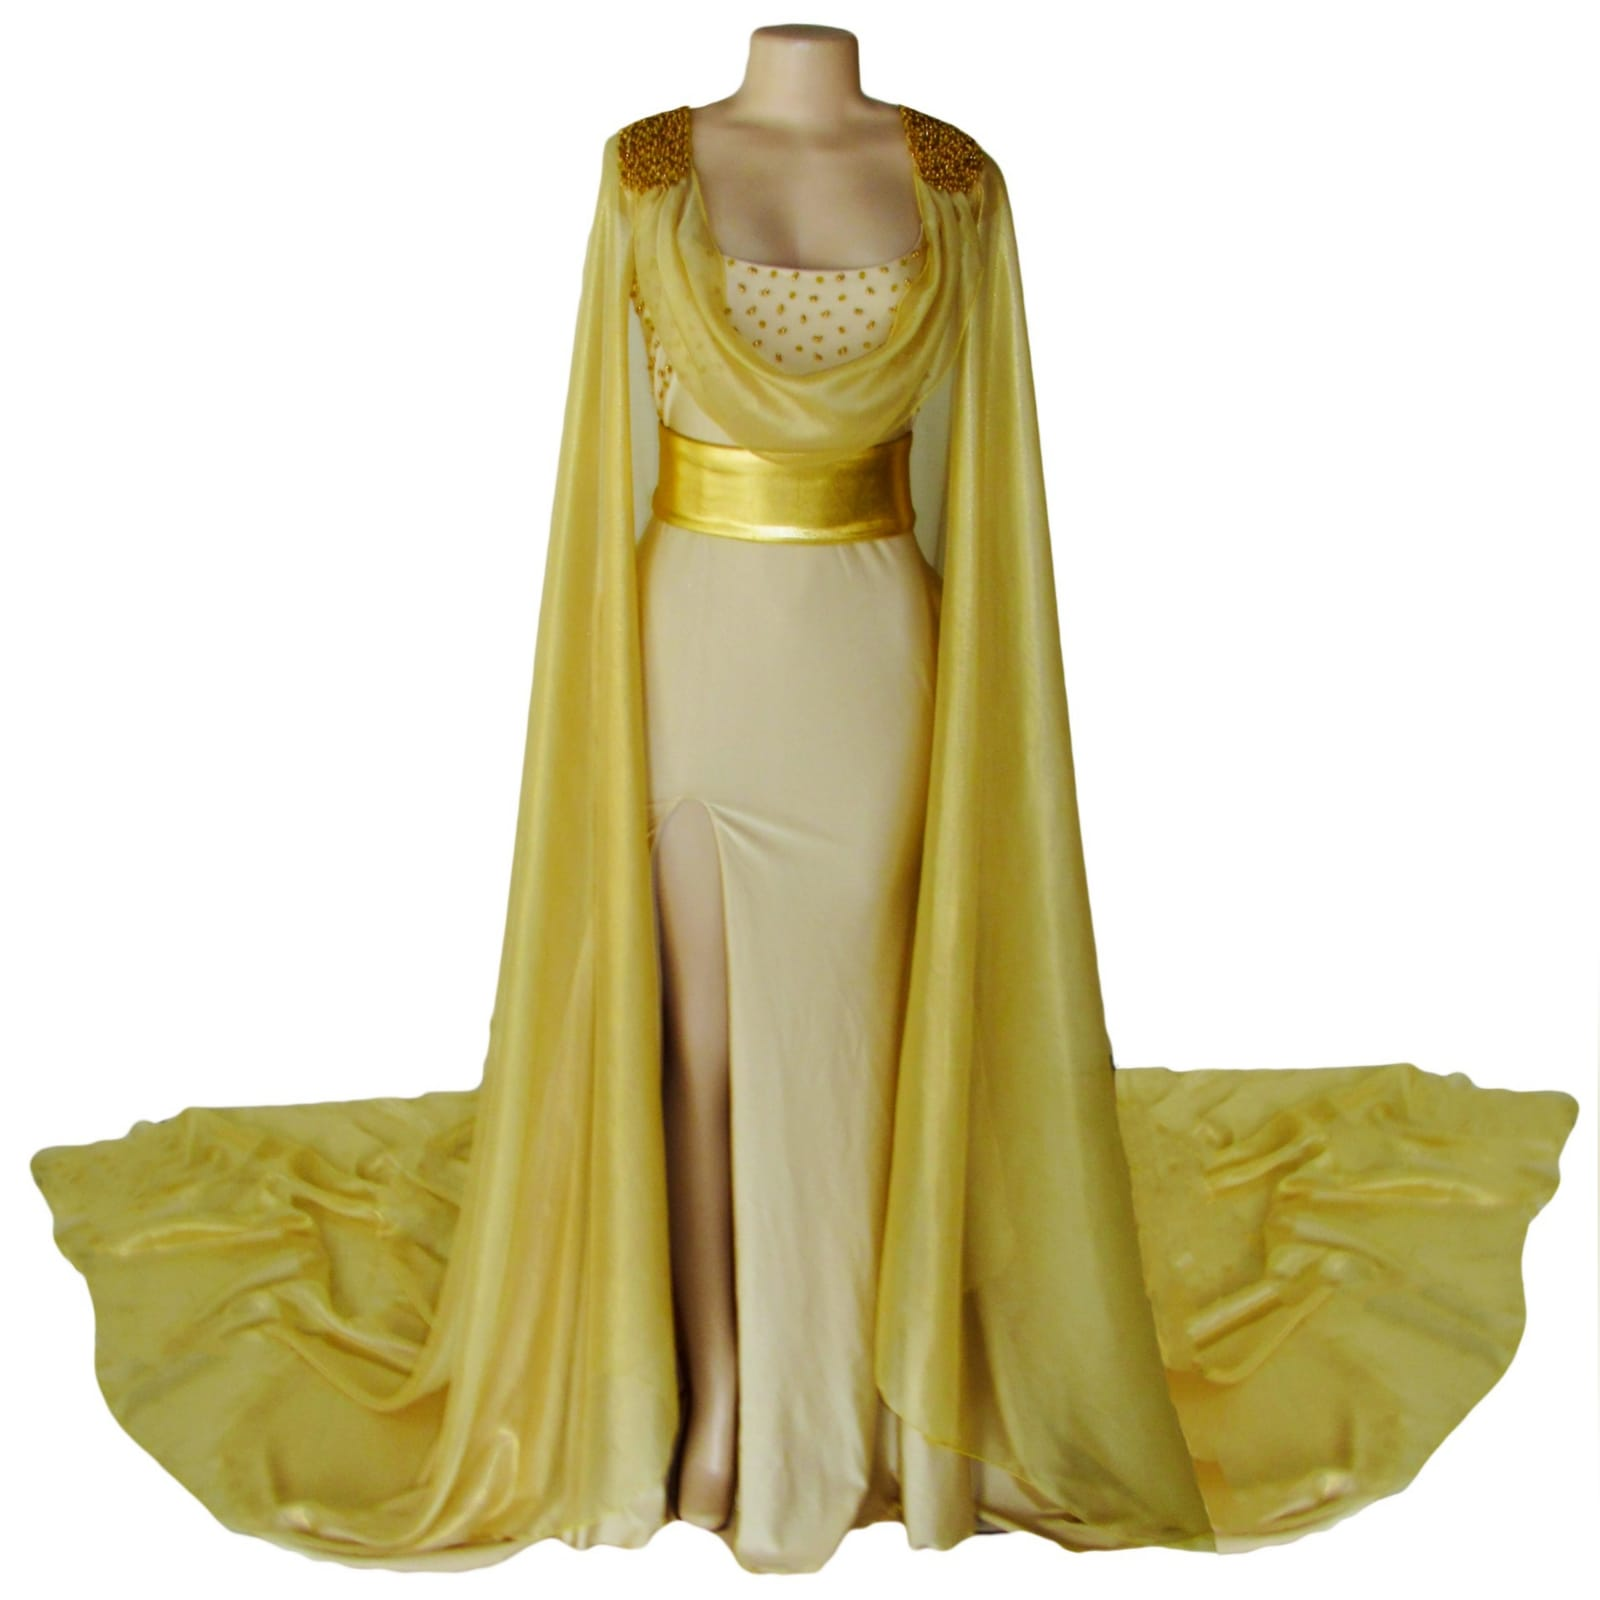 Gold long goddess inspired prom dress 7 gold long goddess inspired prom dress. Long fitted dress with a high slit and a train. With bust detailed with gold beads and a chiffon cowl neck, with a dramatic chiffon cape beaded on the shoulders. With a long train.